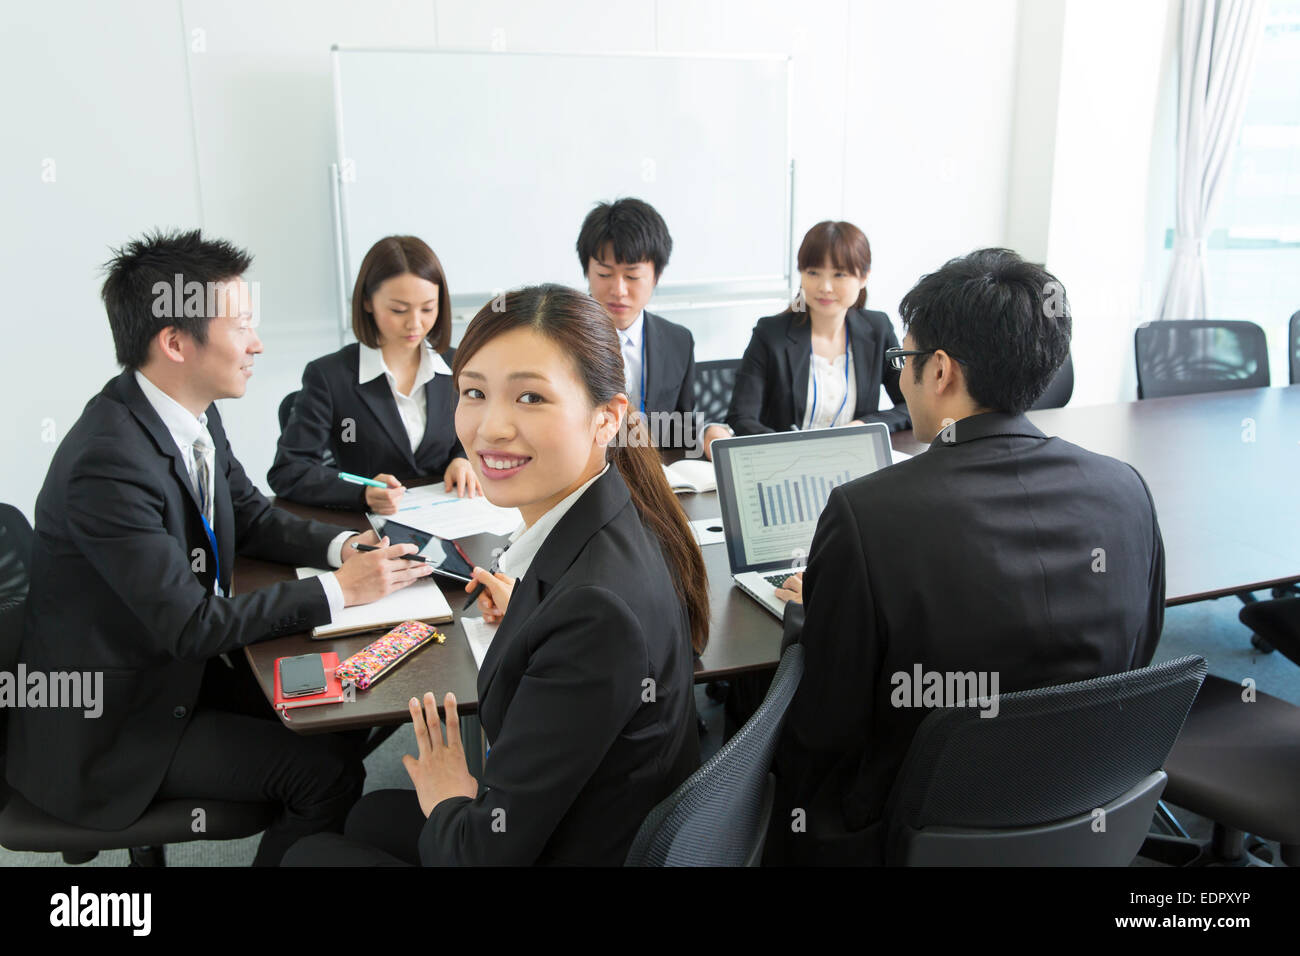 Business People in Meeting and A Woman Looking Back - Stock Image